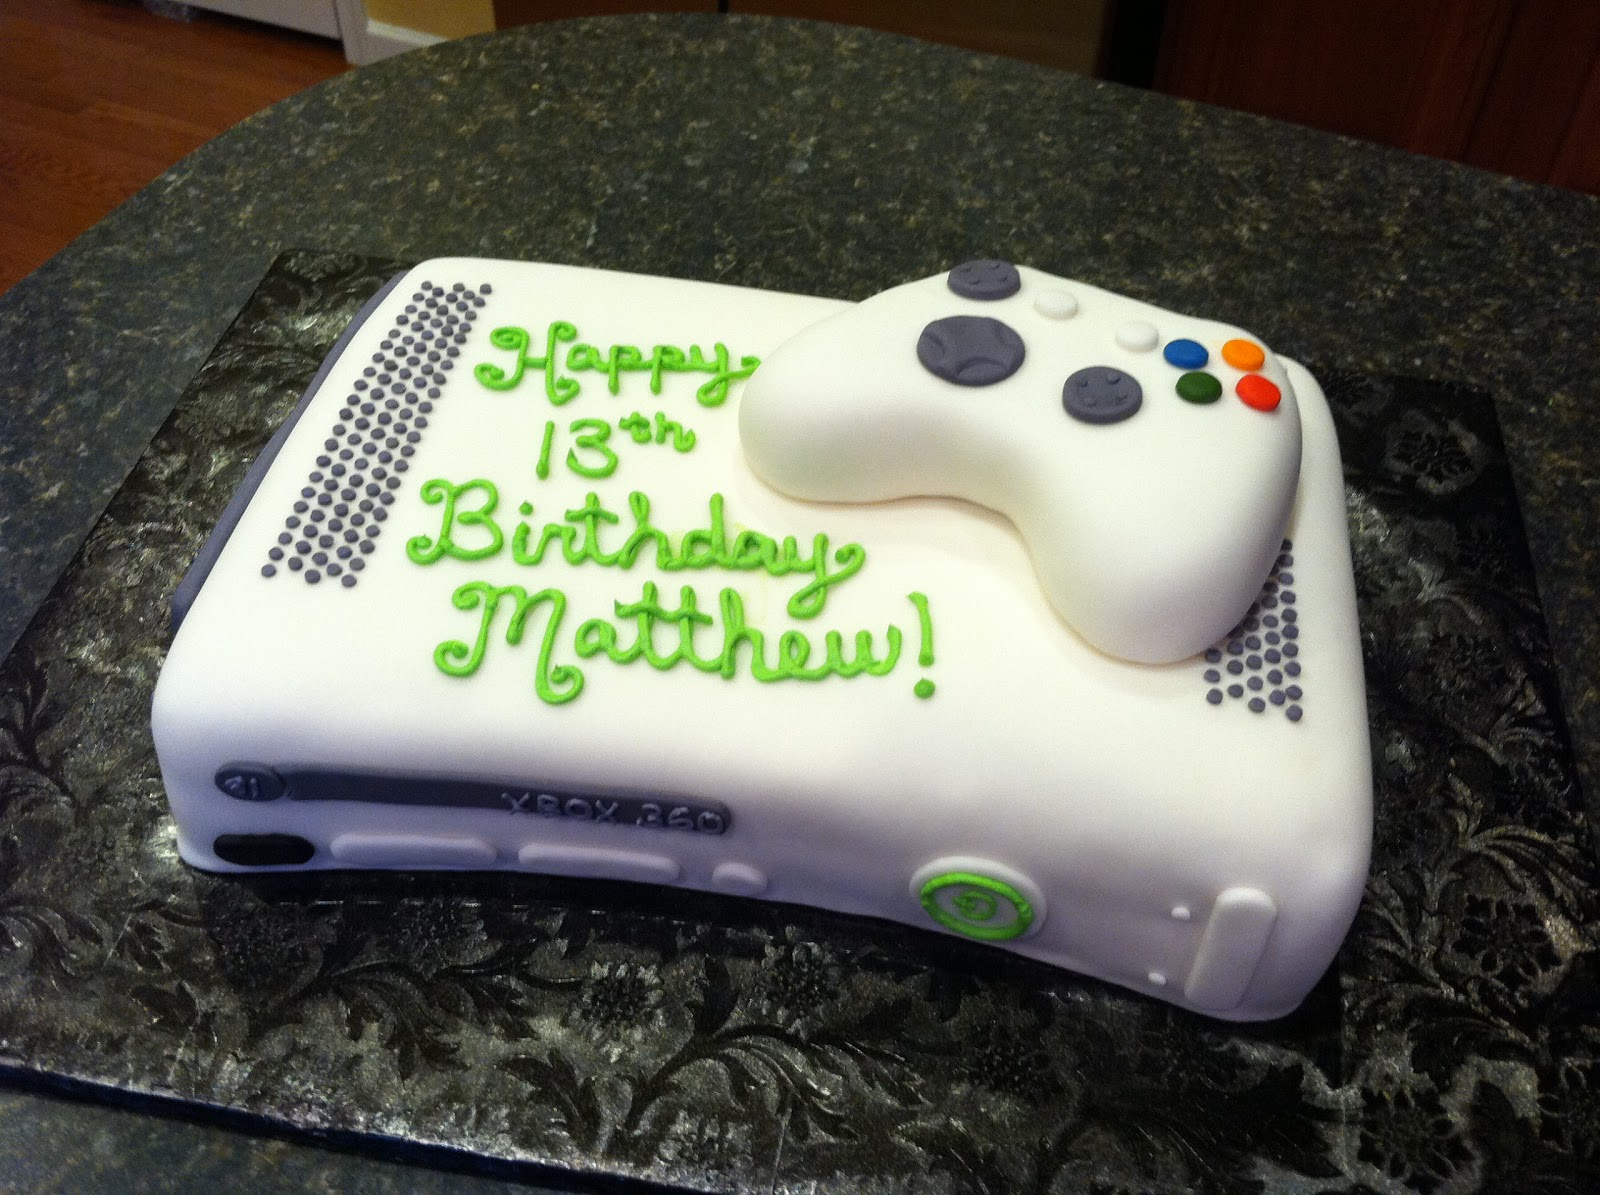 Xbox One Cake Designs : Sara s Custom Cakery: XBox Cake